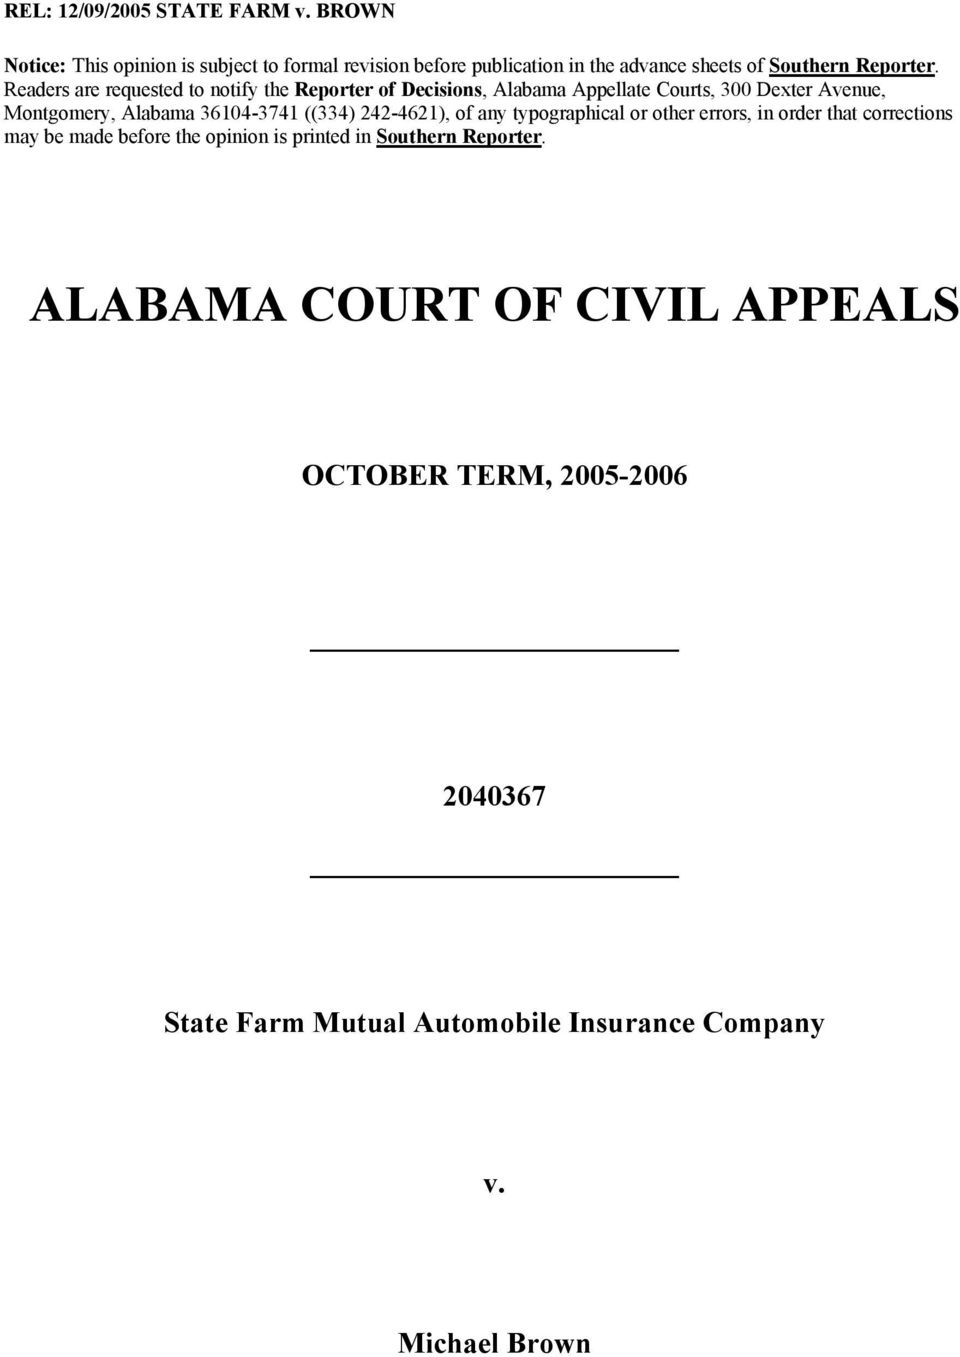 Readers are requested to notify the Reporter of Decisions, Alabama Appellate Courts, 300 Dexter Avenue, Montgomery, Alabama 36104-3741